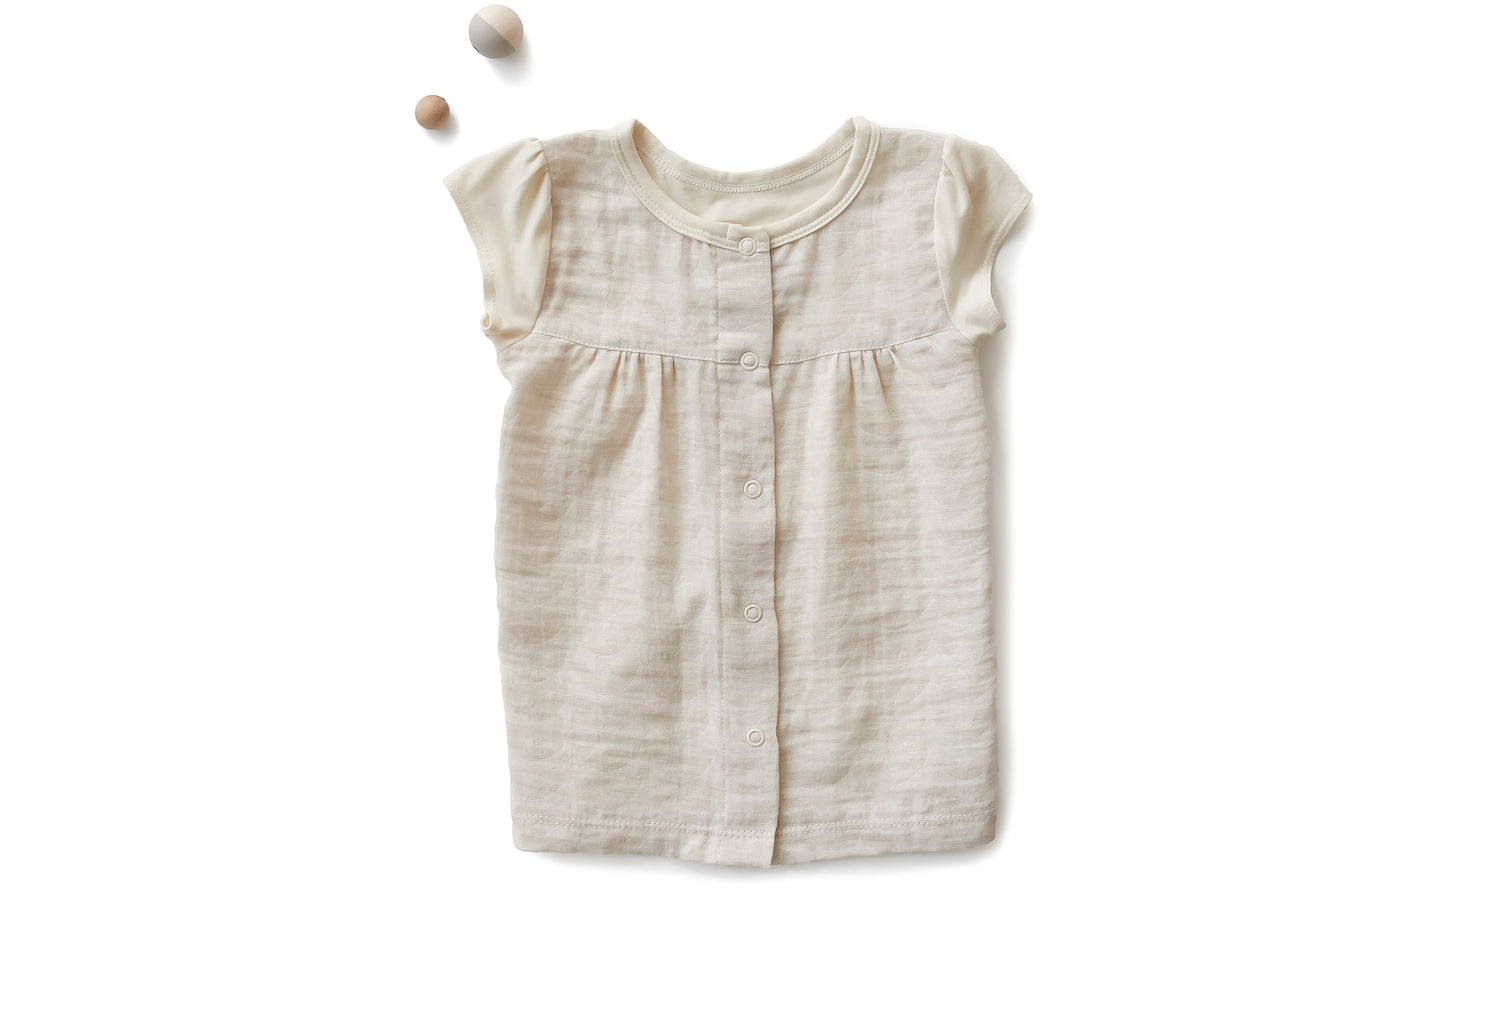 Organic Toddler Girl's Short Sleeve Lounge / Pajama Shirt | Ivory